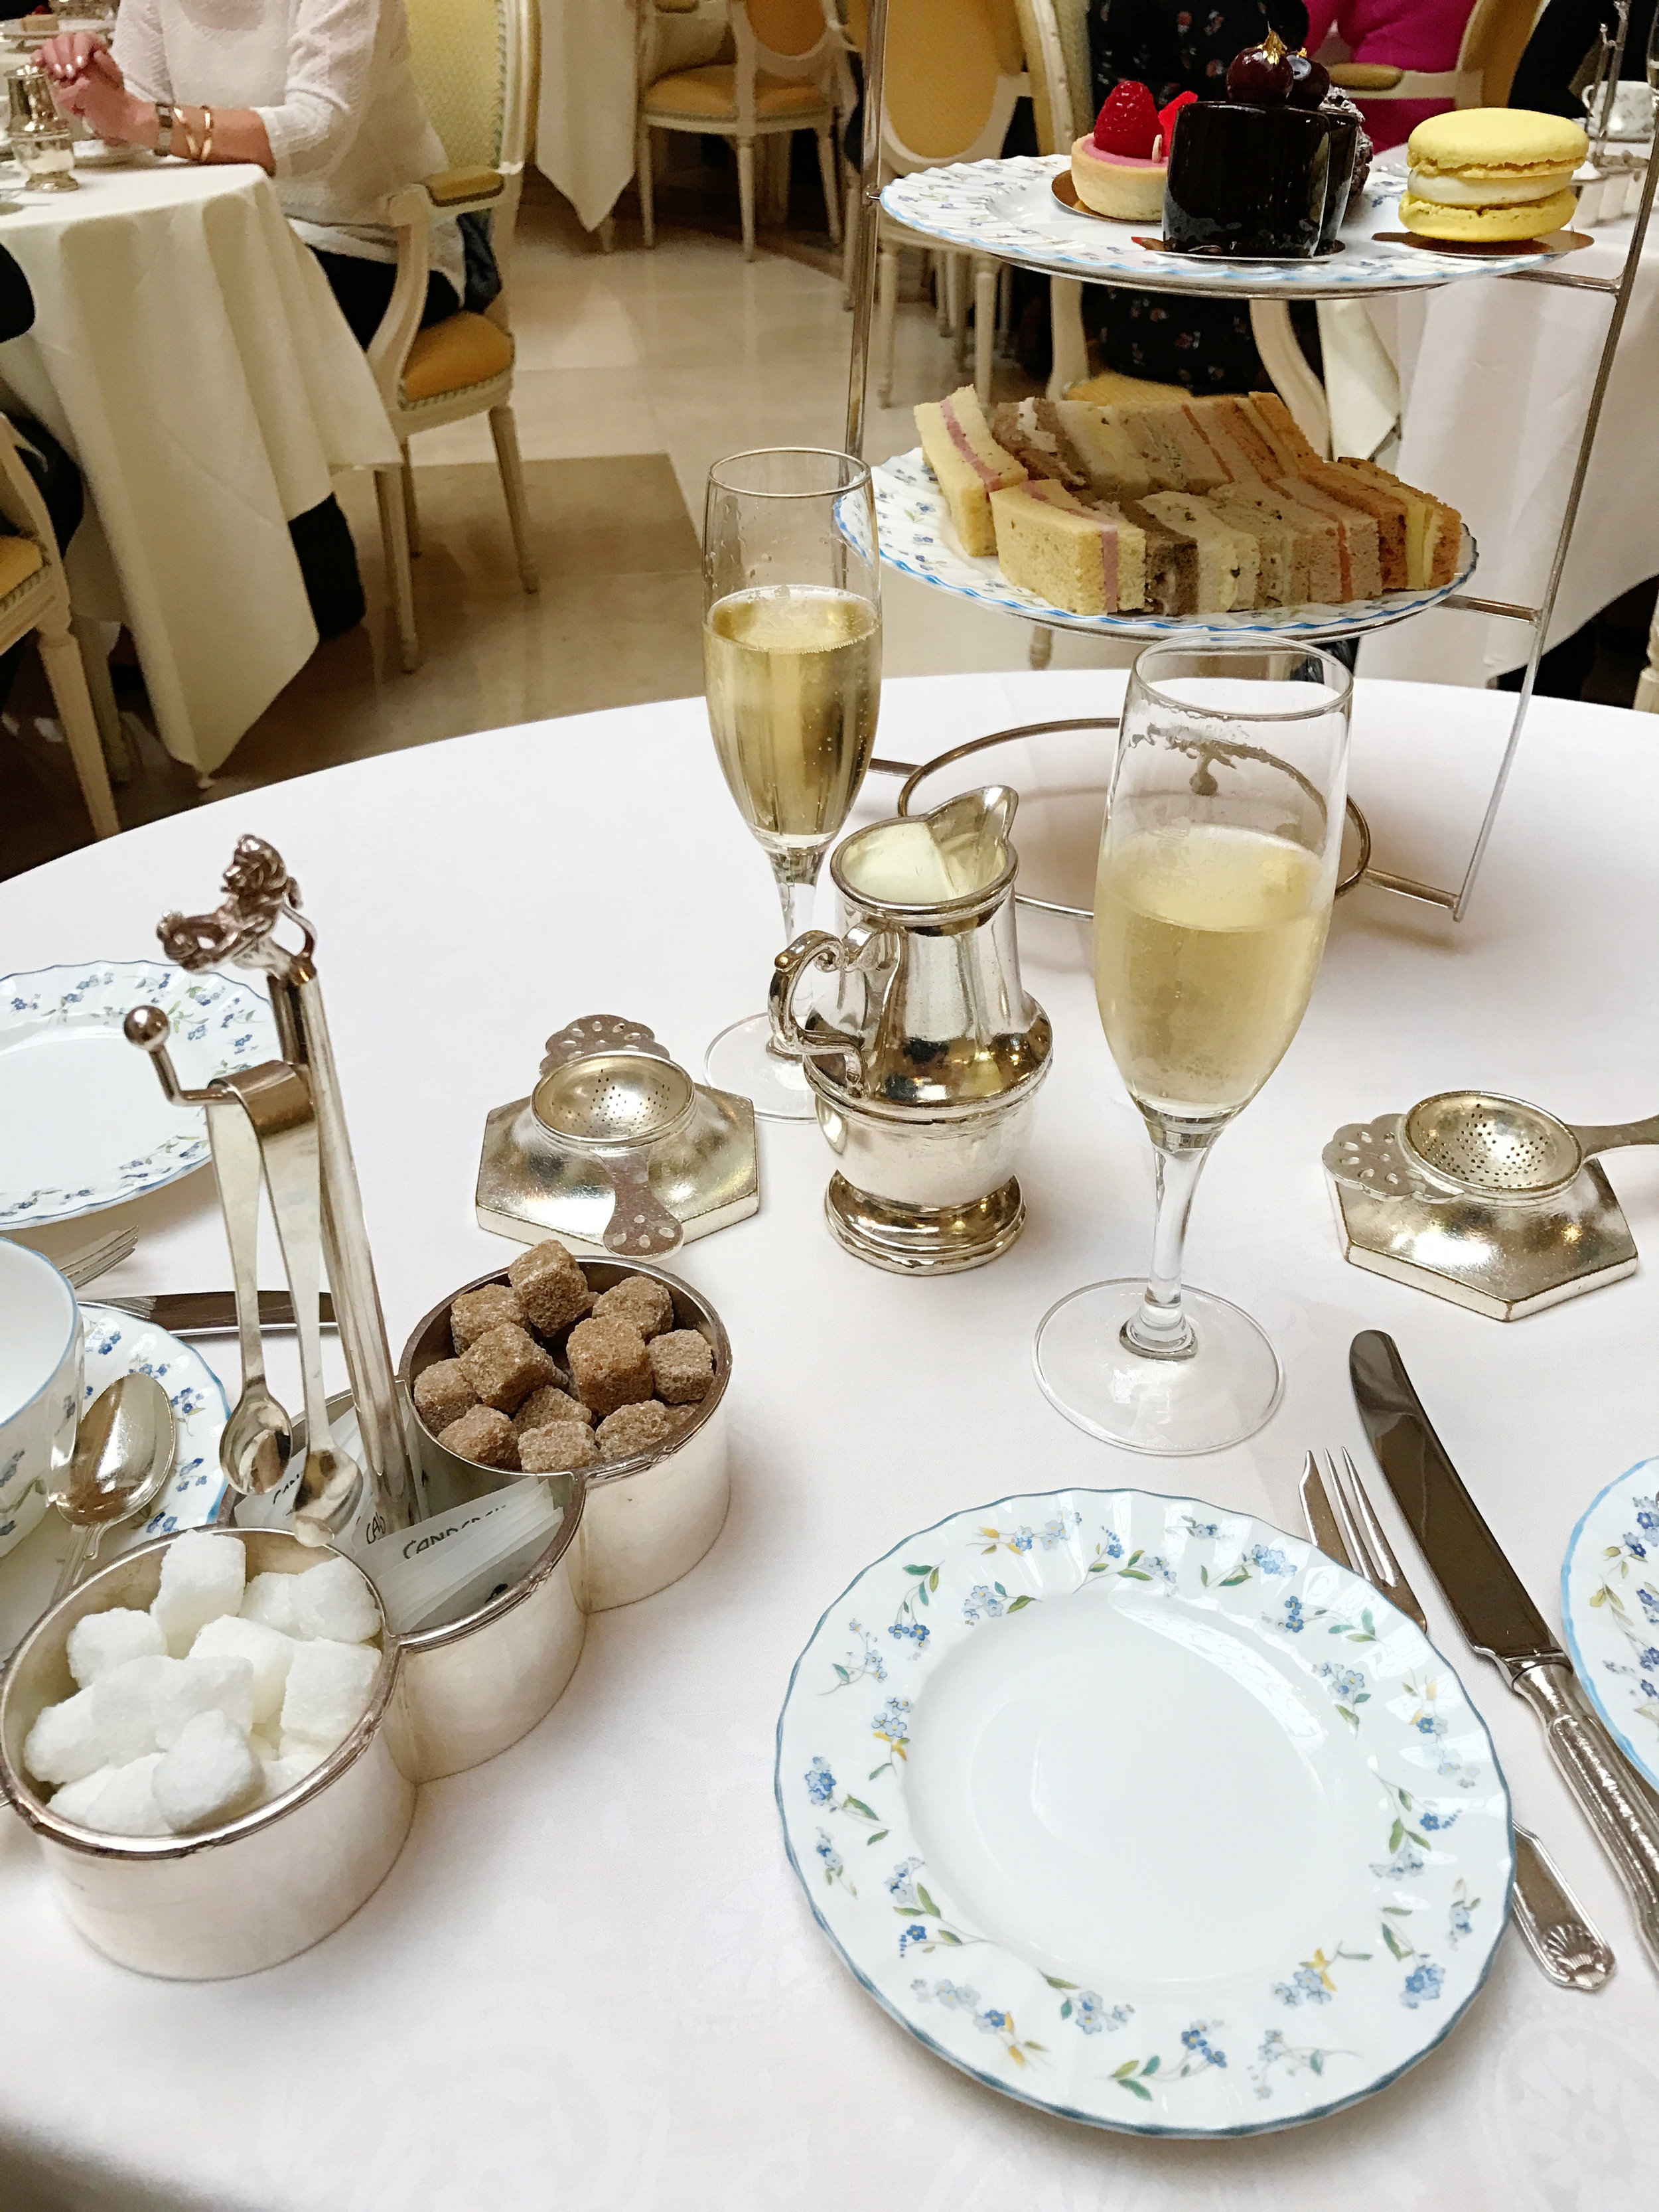 Champagne start to high tea at The Ritz London - #Kurtantravels London Travel Guide Part 2 - BySarahRae.com